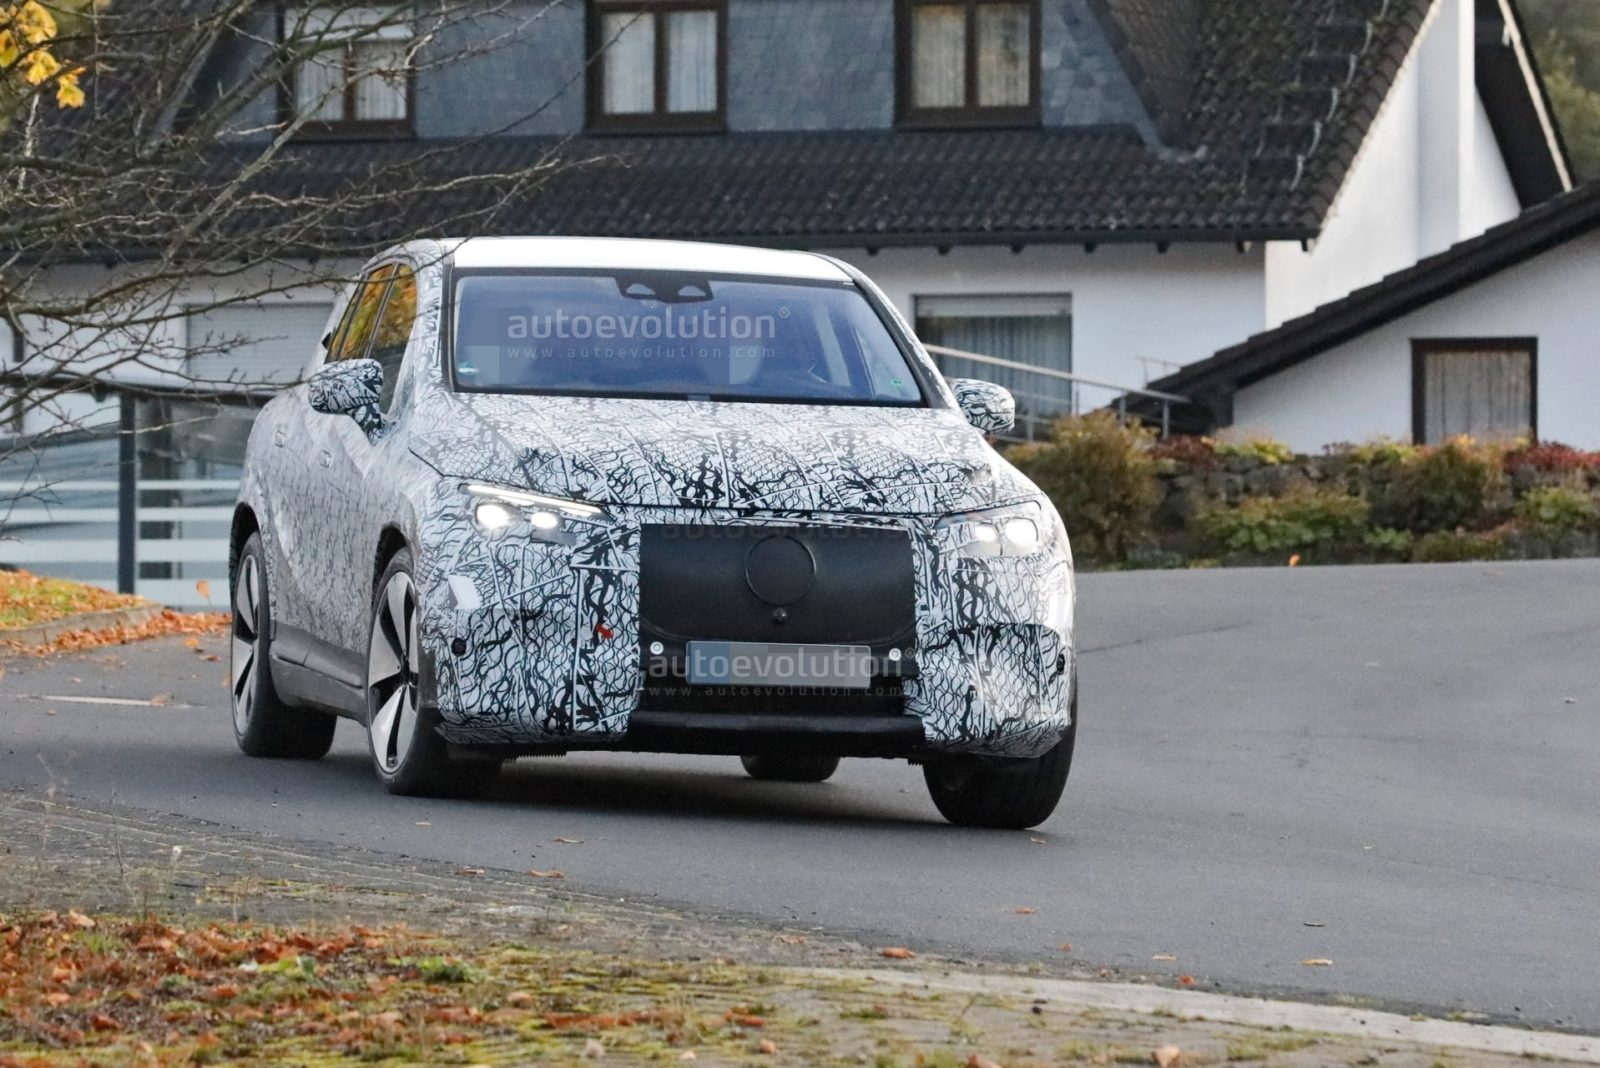 2023-mercedes-eqe-suv-spied-for-the-first-time,-wears-big-wheels-with-pride